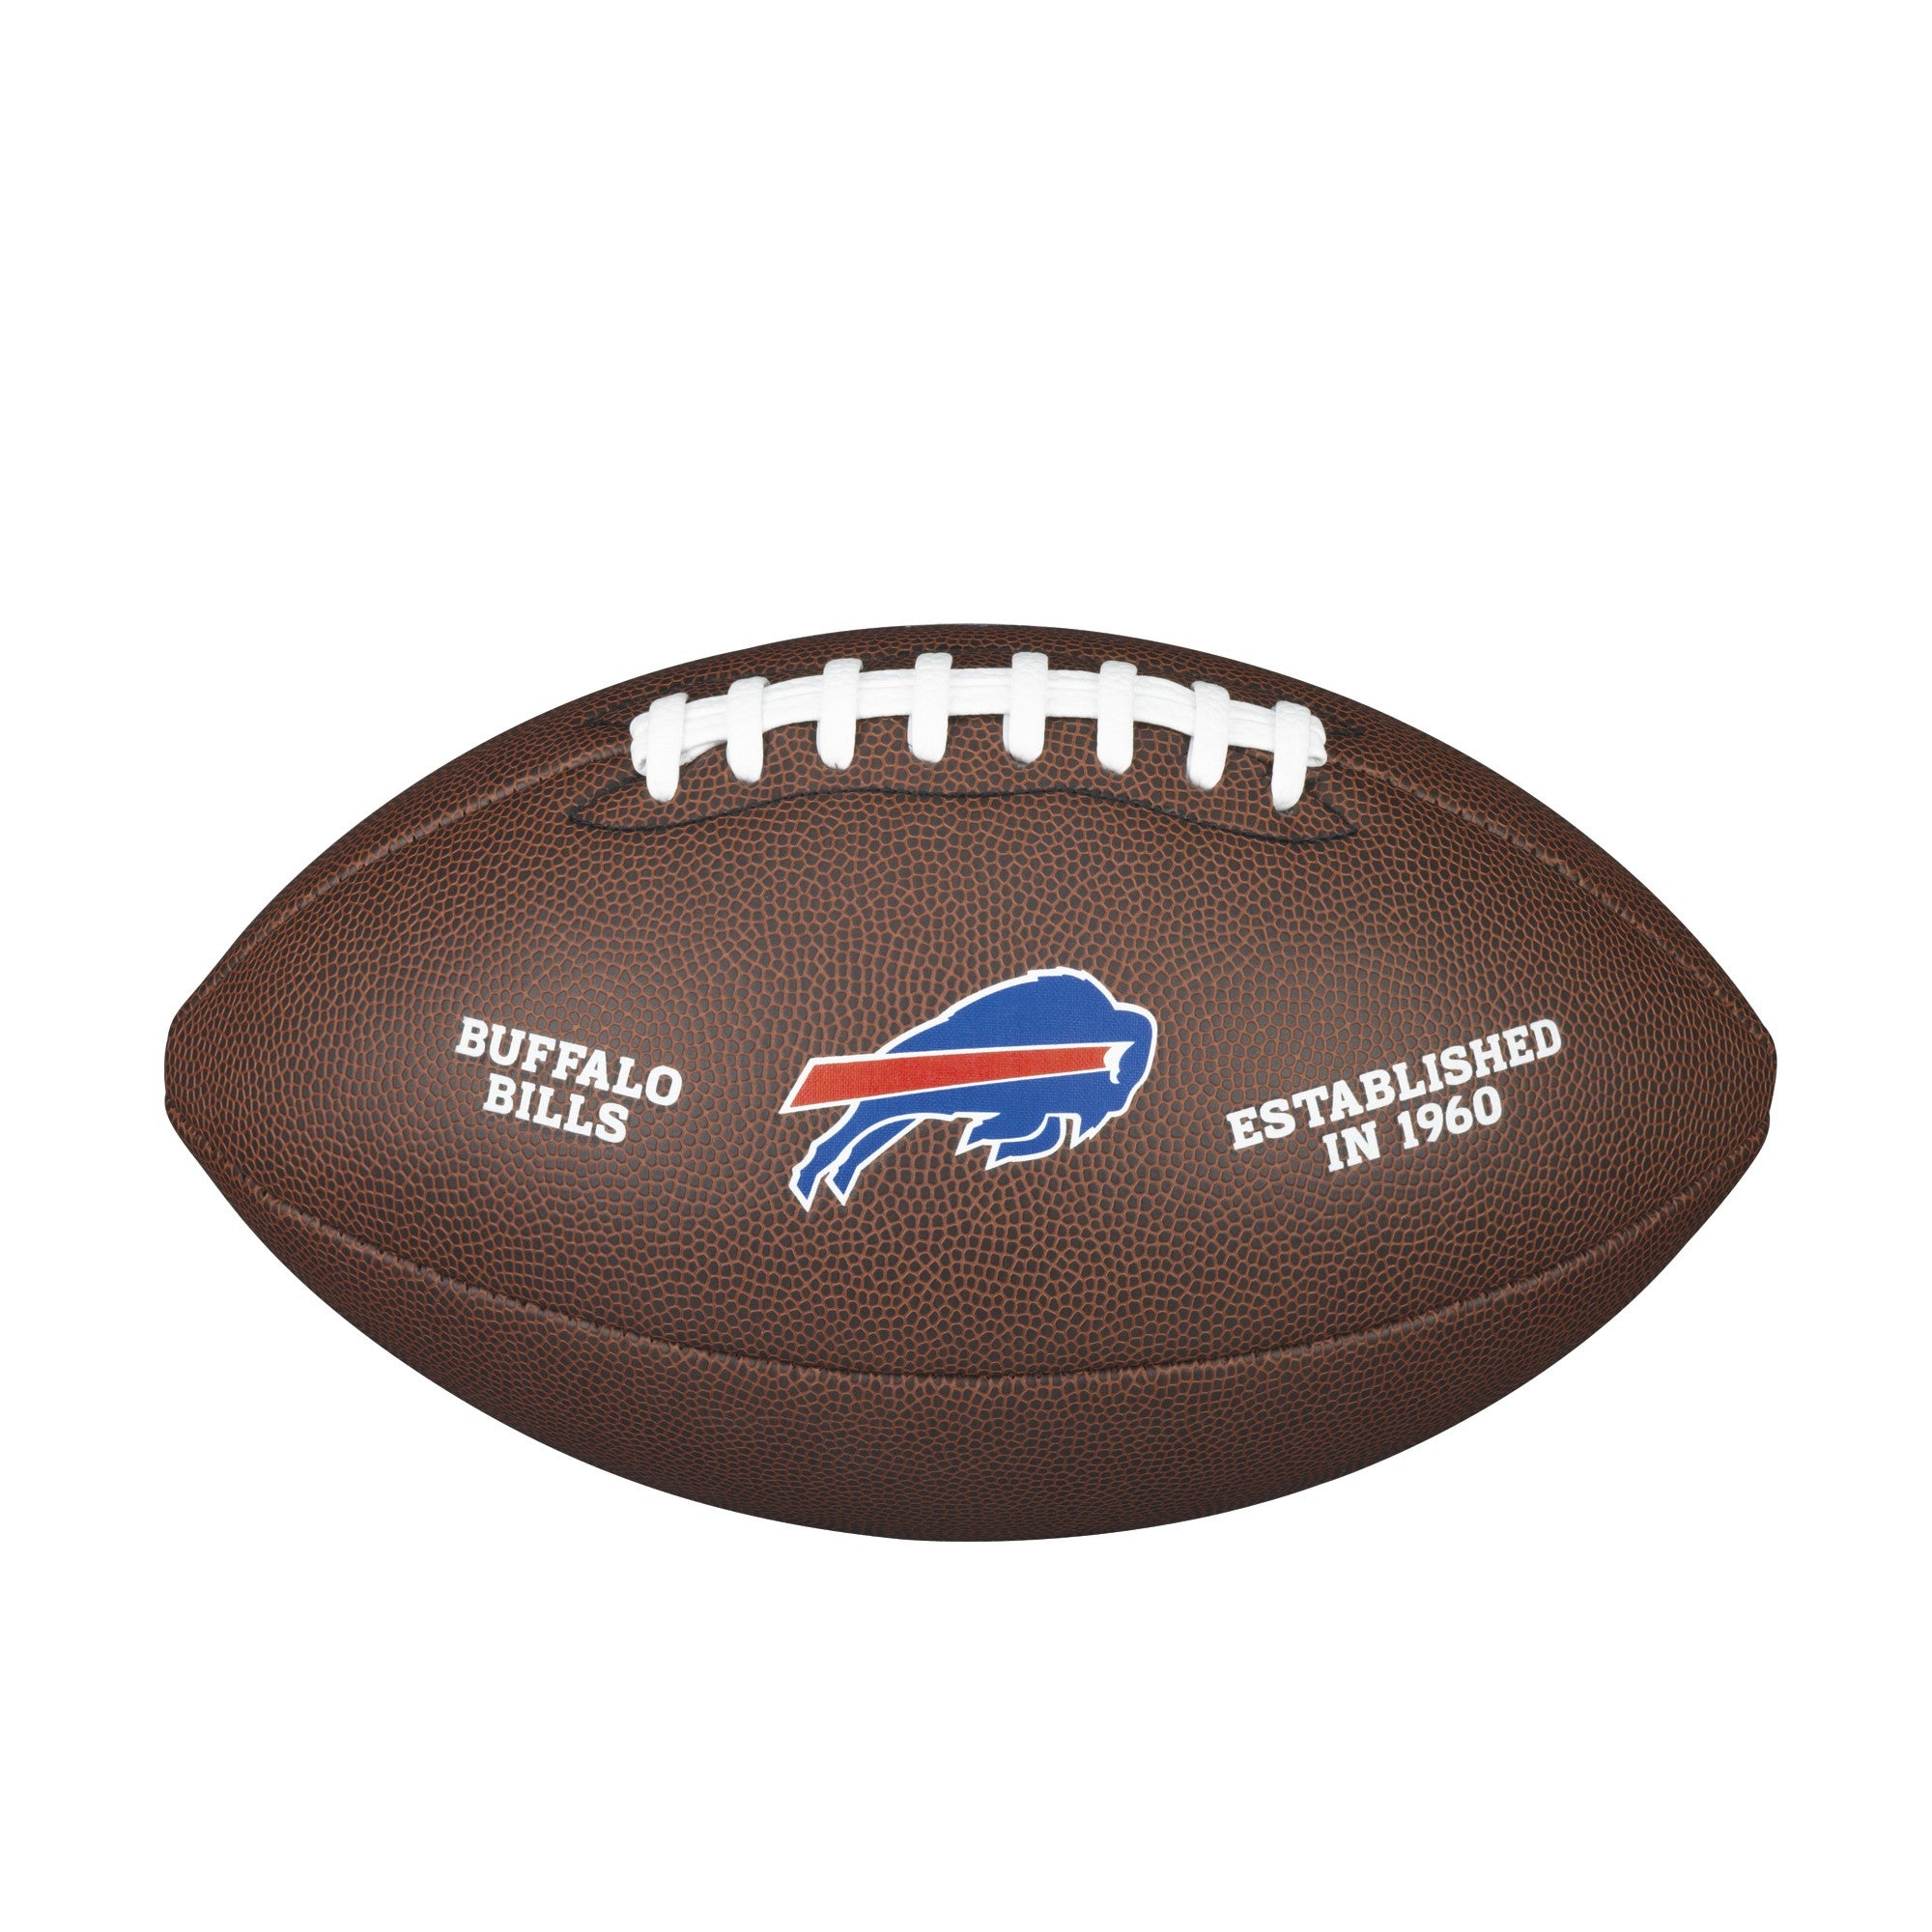 NFL TEAM LOGO COMPOSITE FOOTBALL - OFFICIAL, BUFFALO BILLS